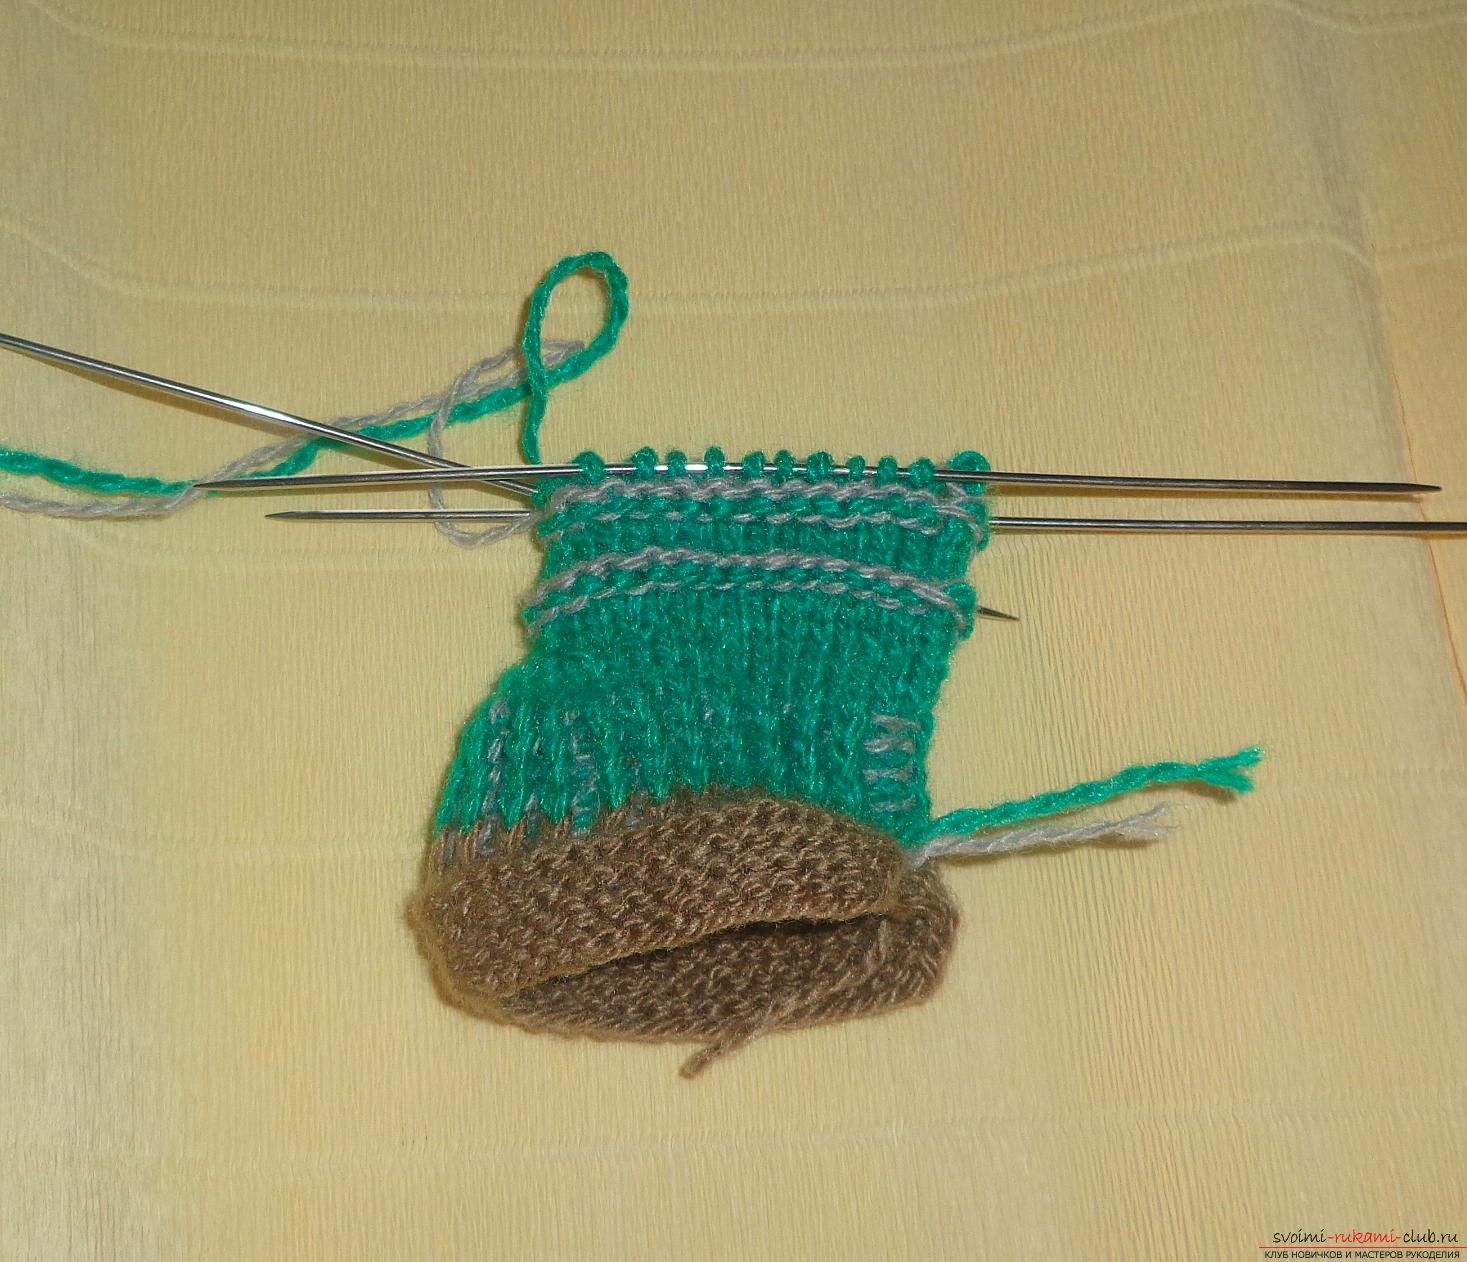 Photos for a lesson on knitting on knitting needles for a boy. Photo №8